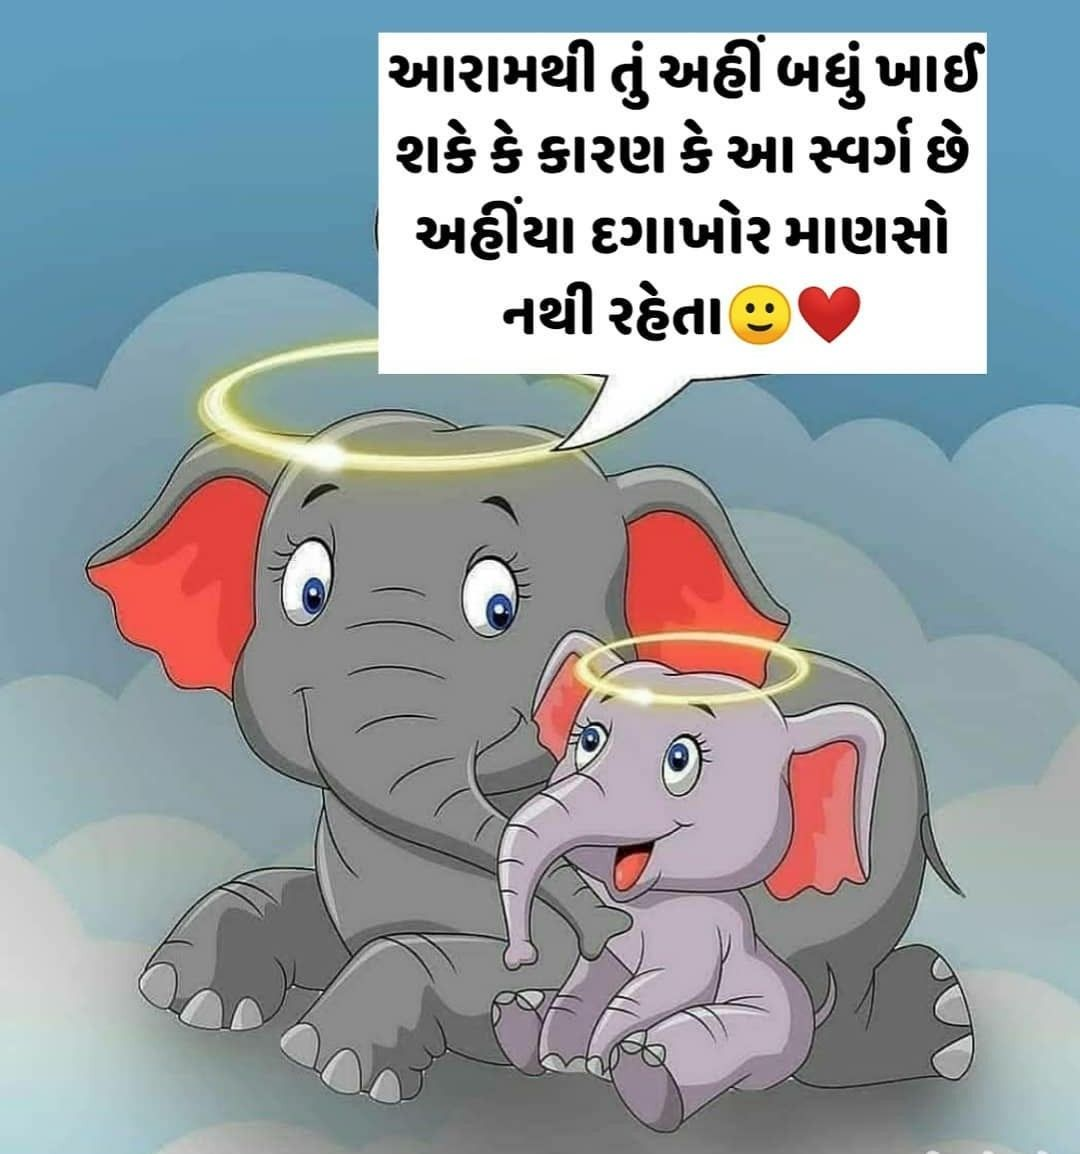 Pin by Ajay Dalal on Love u♥️ in 2020 Animals, Elephant